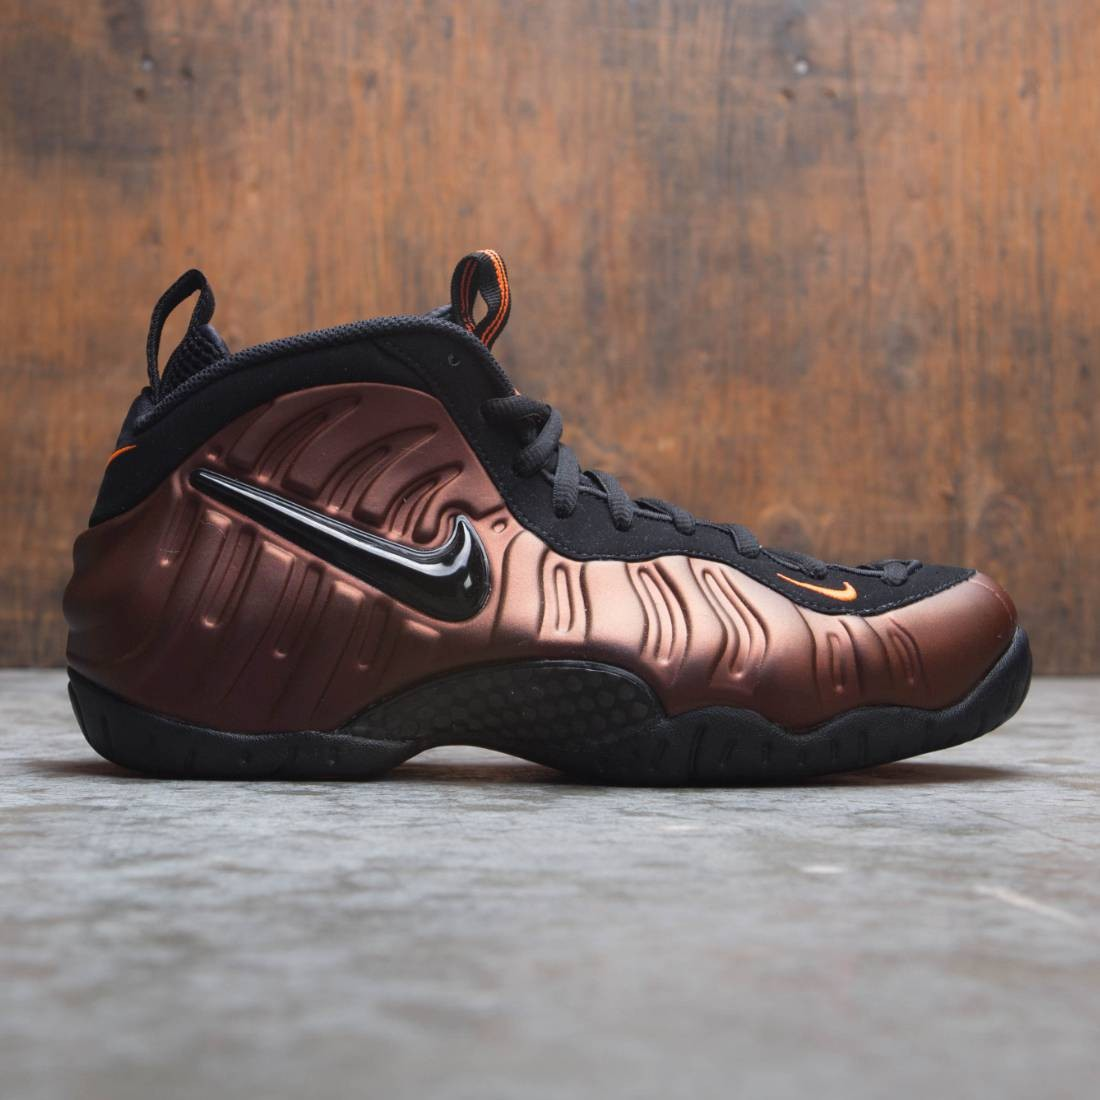 AUTHENTIC MEN S NIKE AIR FOAMPOSITE ONE ...eBay